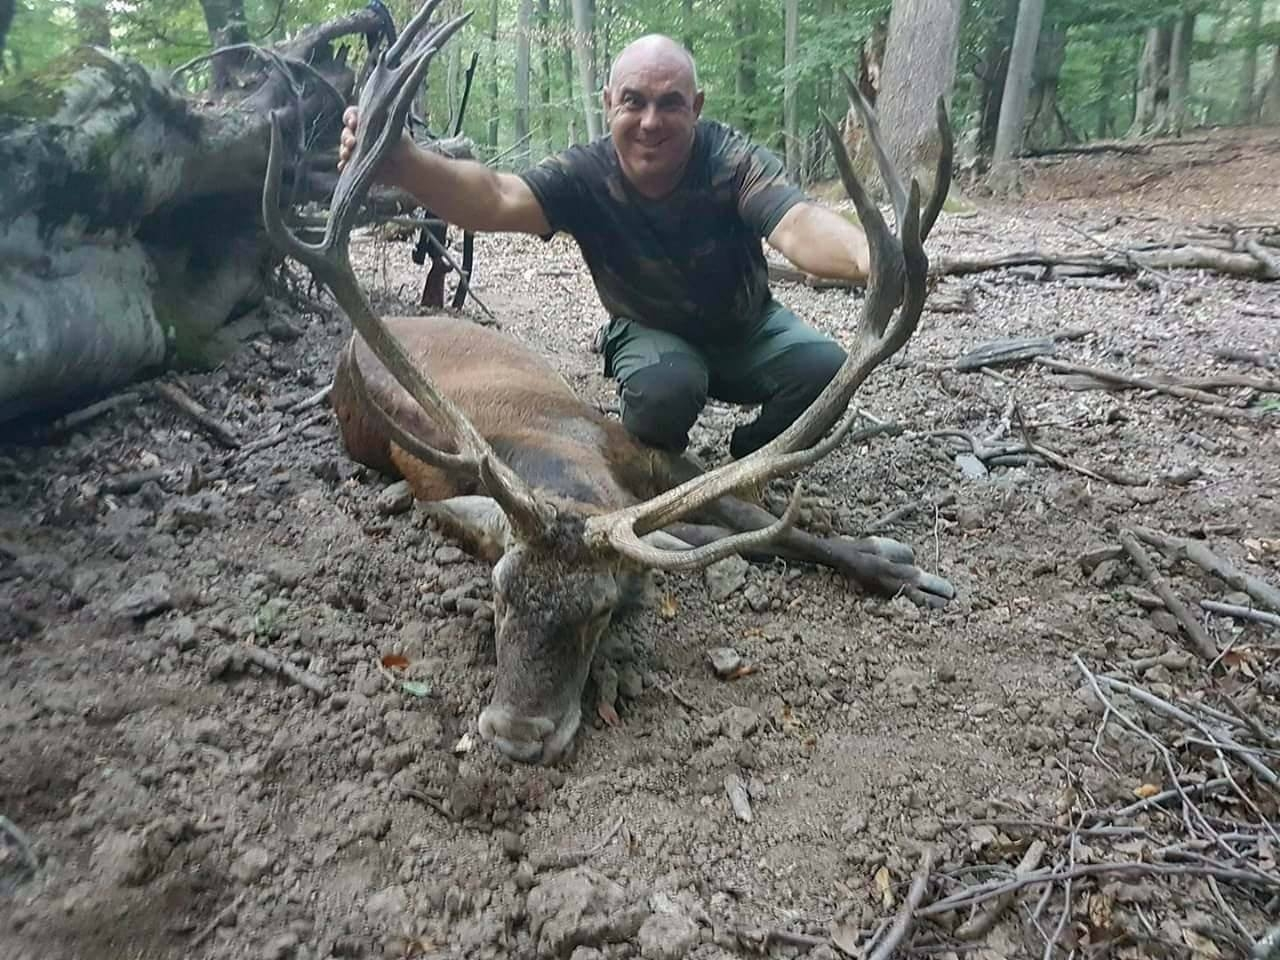 Hunt for Red Deer Trophy in Bulgaria